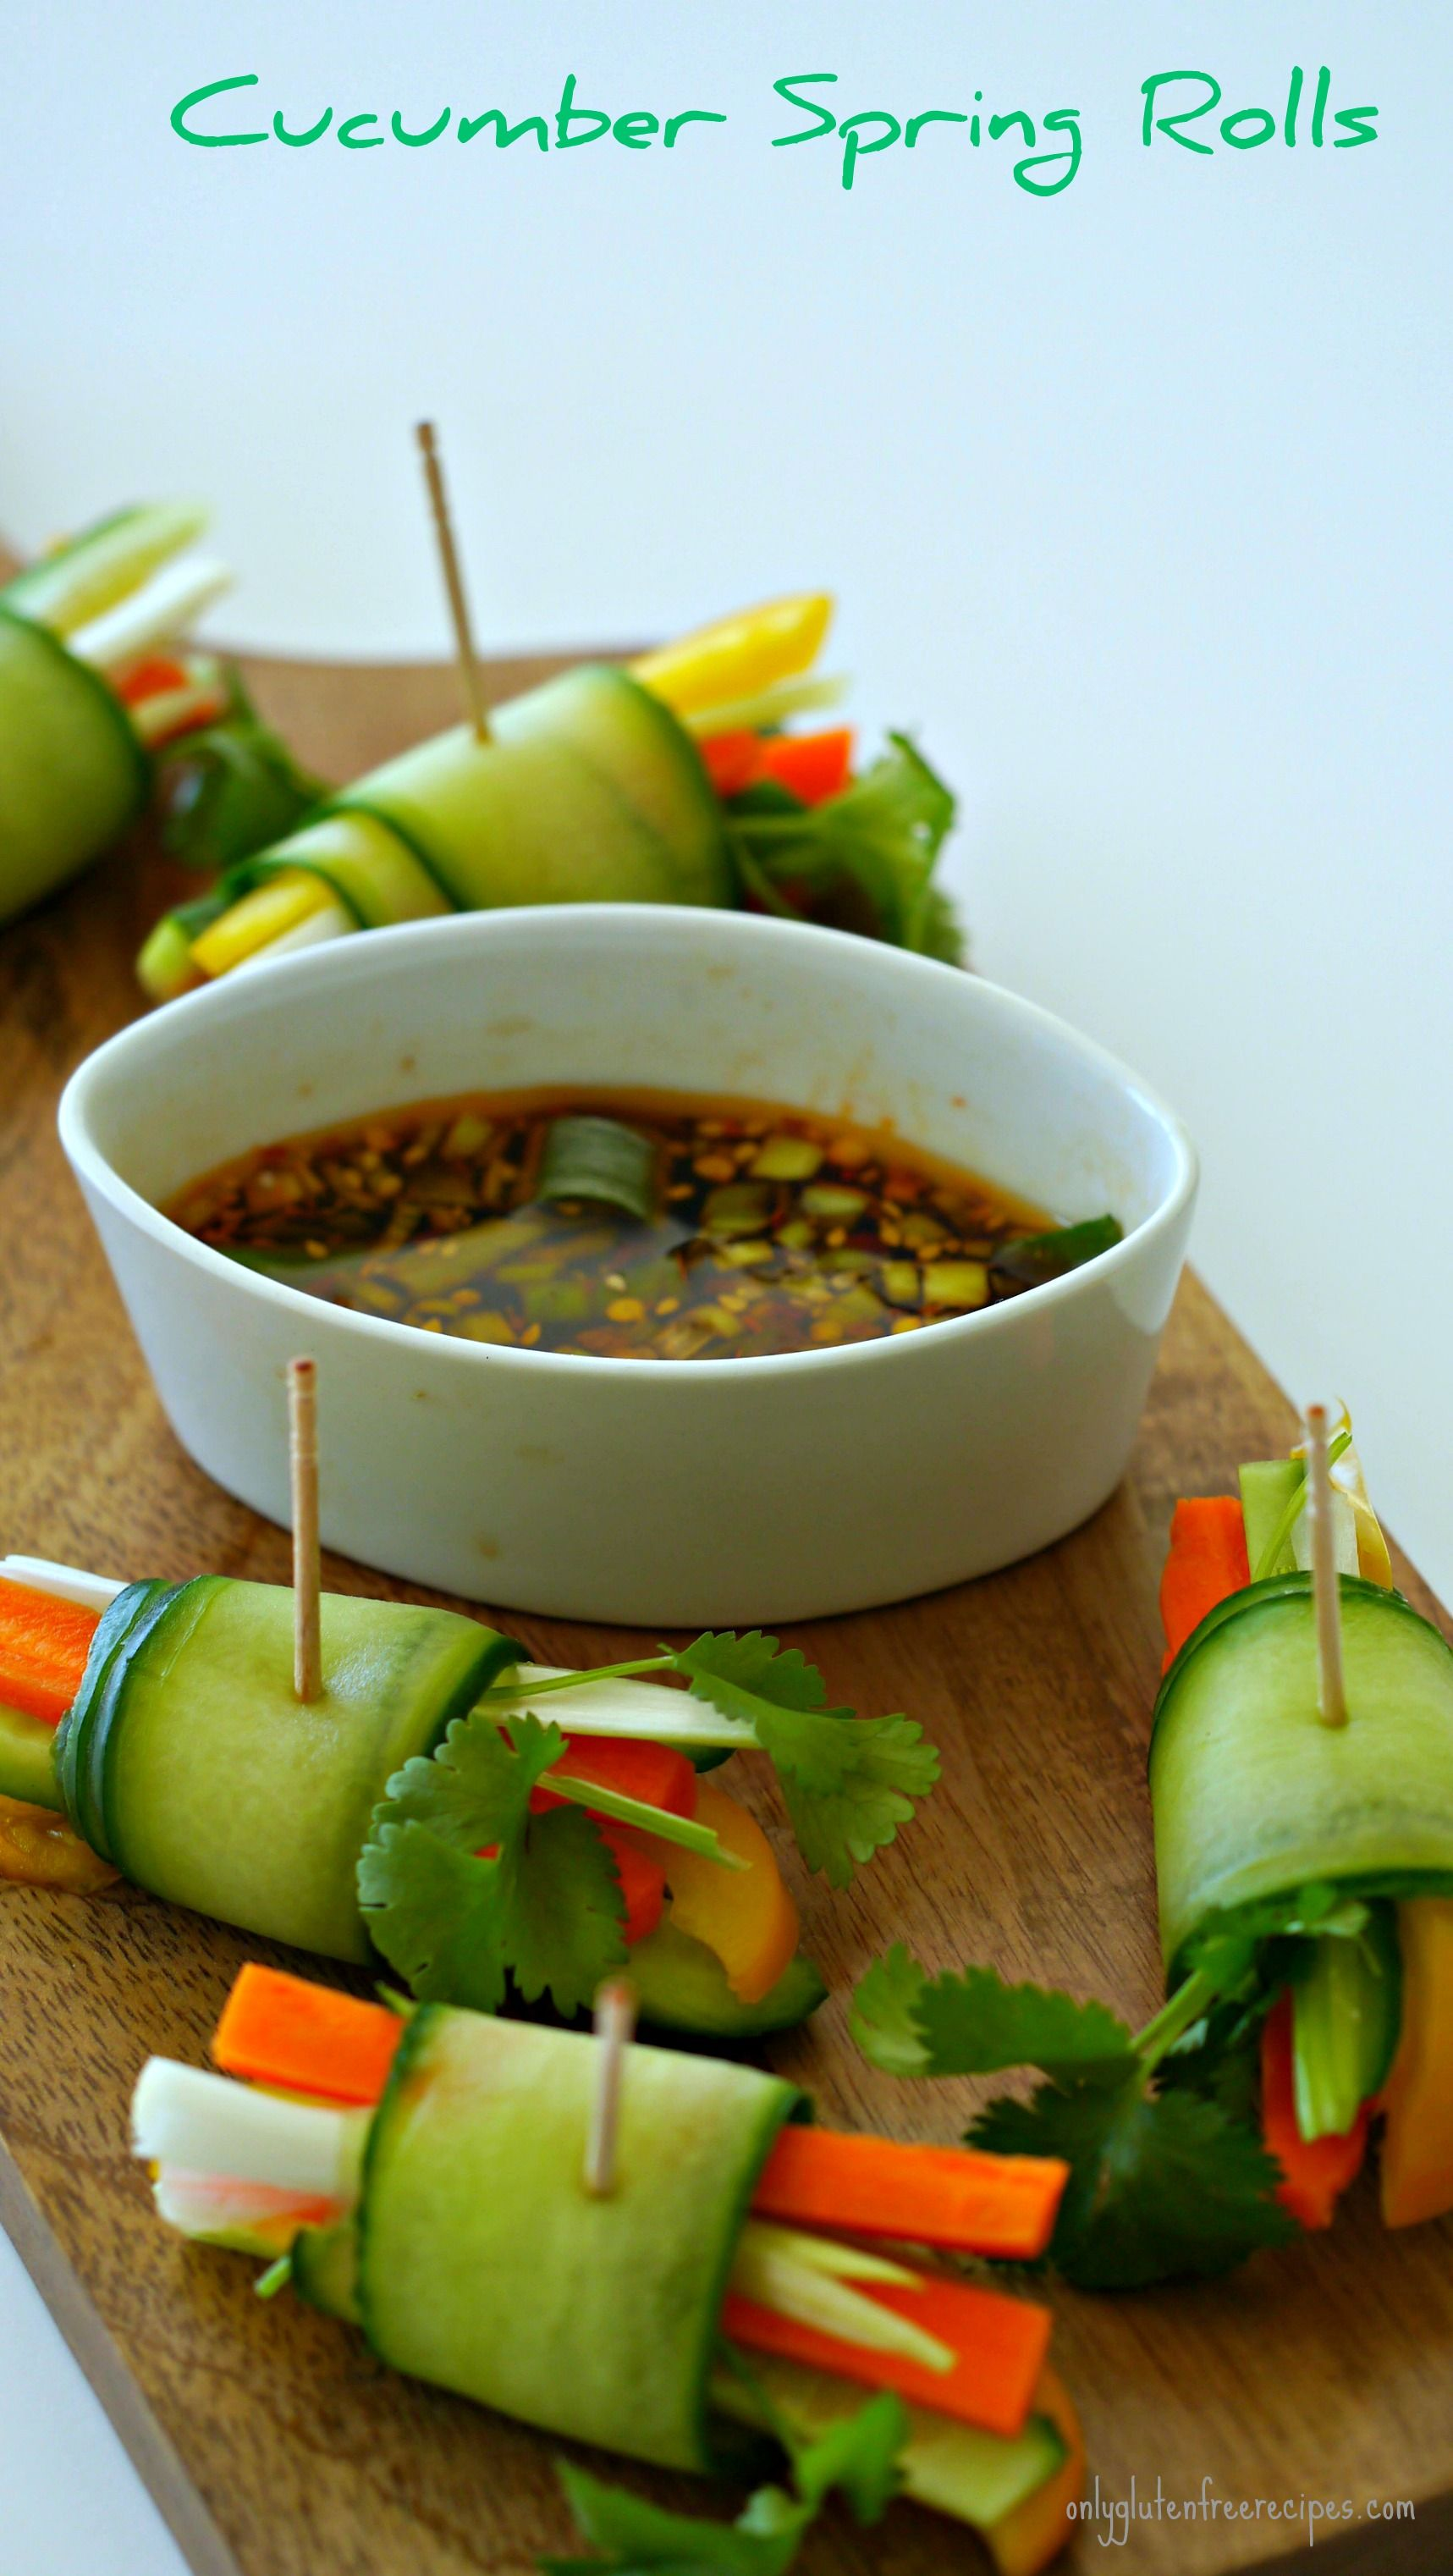 CUCUMBER SPRING ROLLS ~ Whether you are entertaining a crowd or looking for a healthy snack for your kids, these raw spring rolls are a perfect addition. I have added flavourful Vietnamese dipping sauce complementing the fresh veggies.